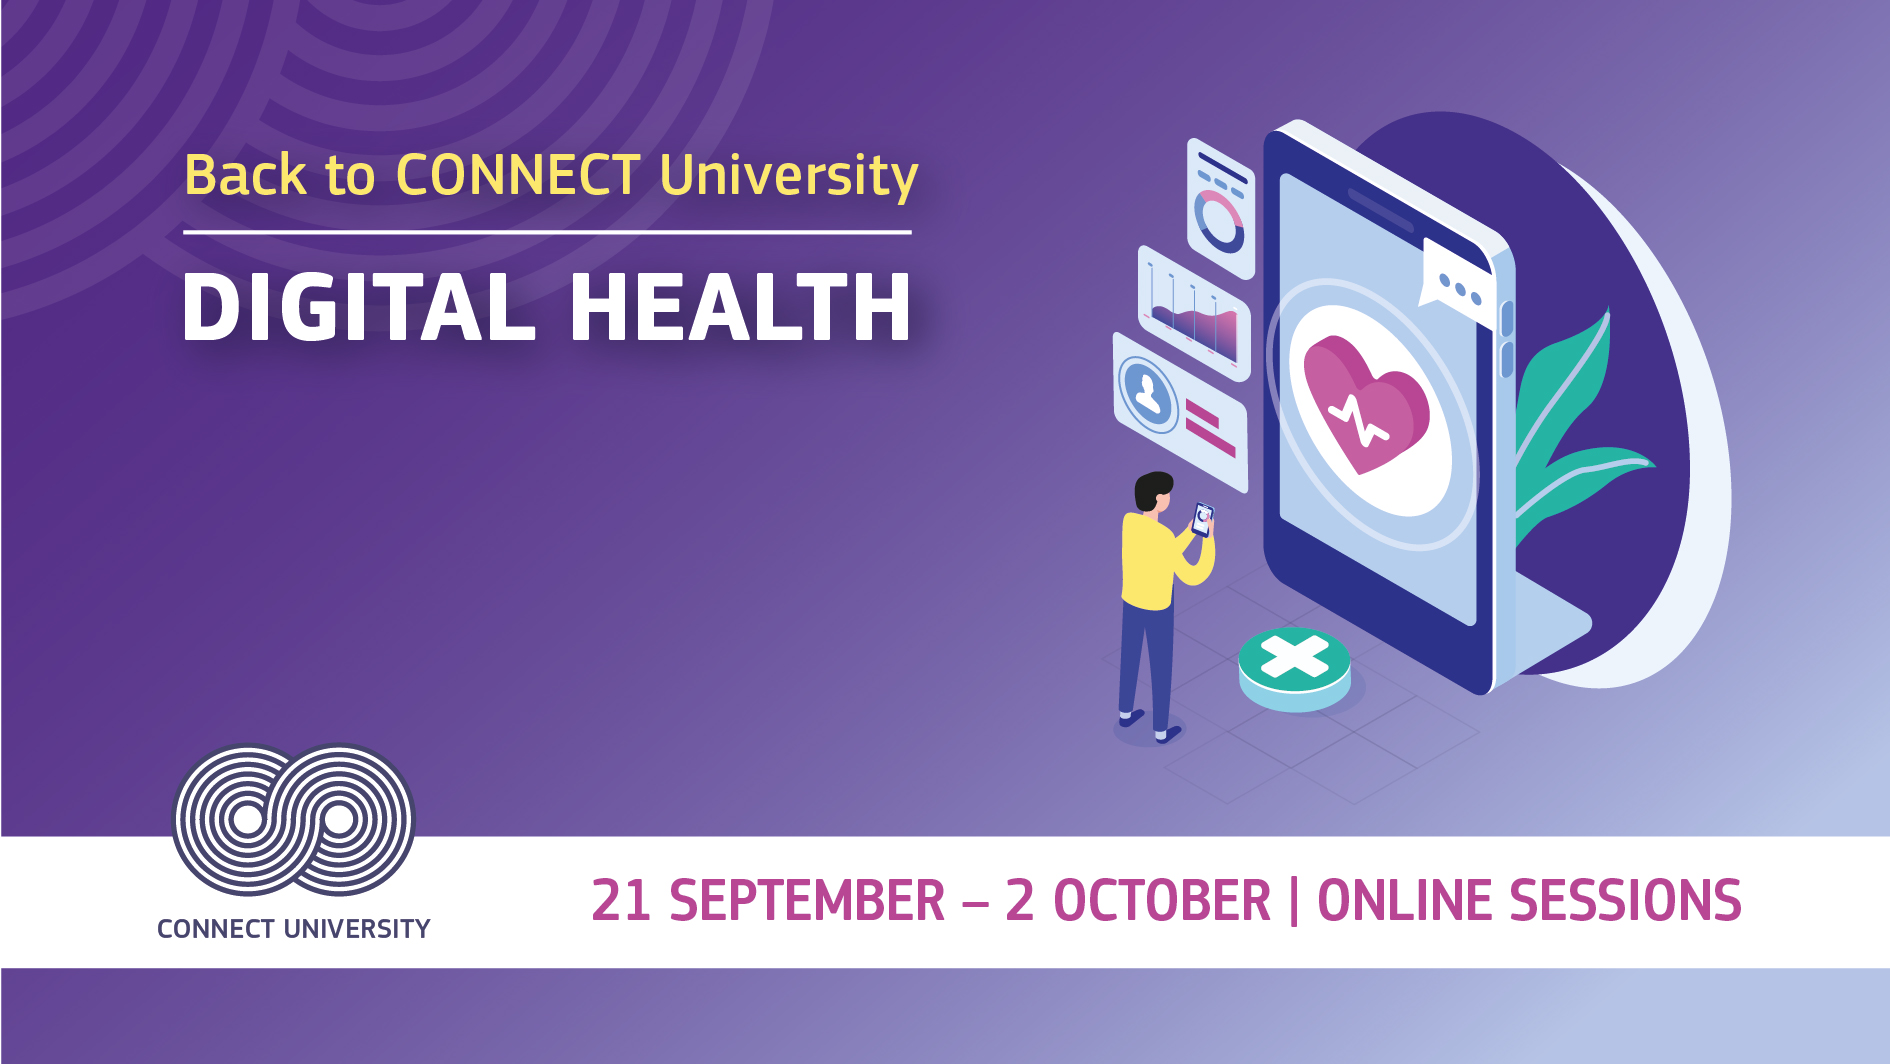 digital health visual - role of technology in revolutionasing health industry